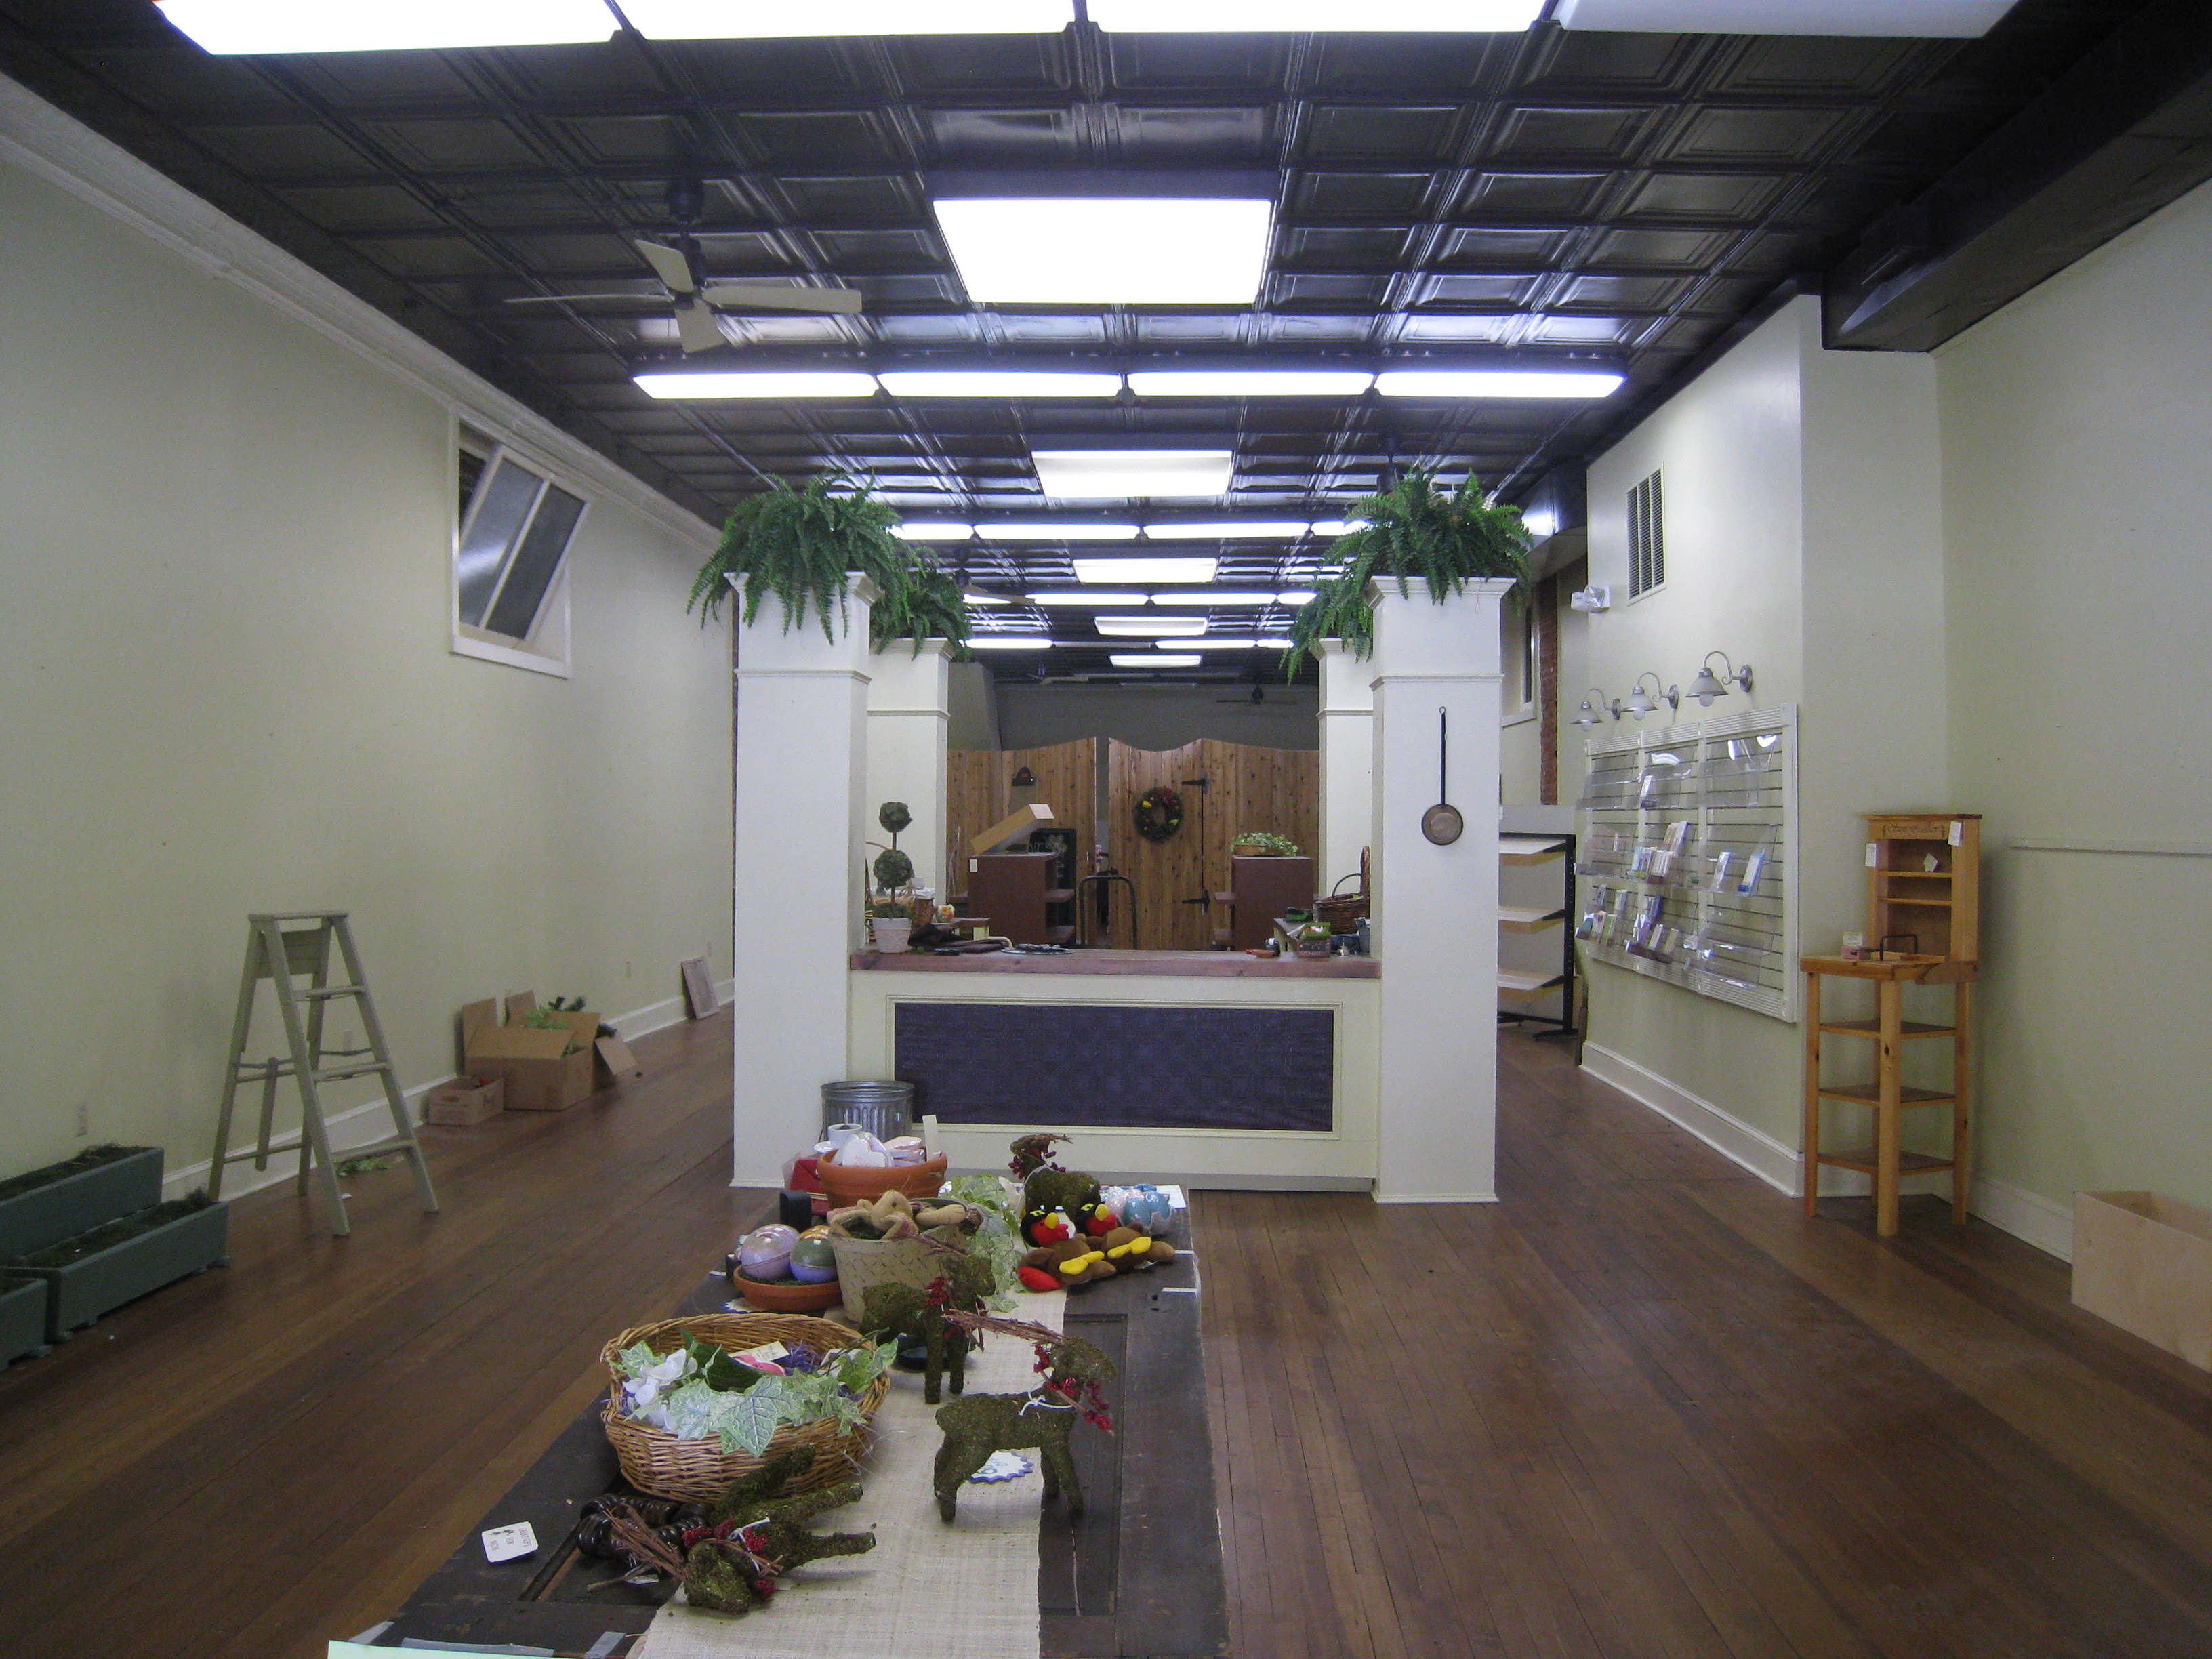 Fulpers, Nevius Brothers, Blaher's, Hallmark, and The Potting Shed